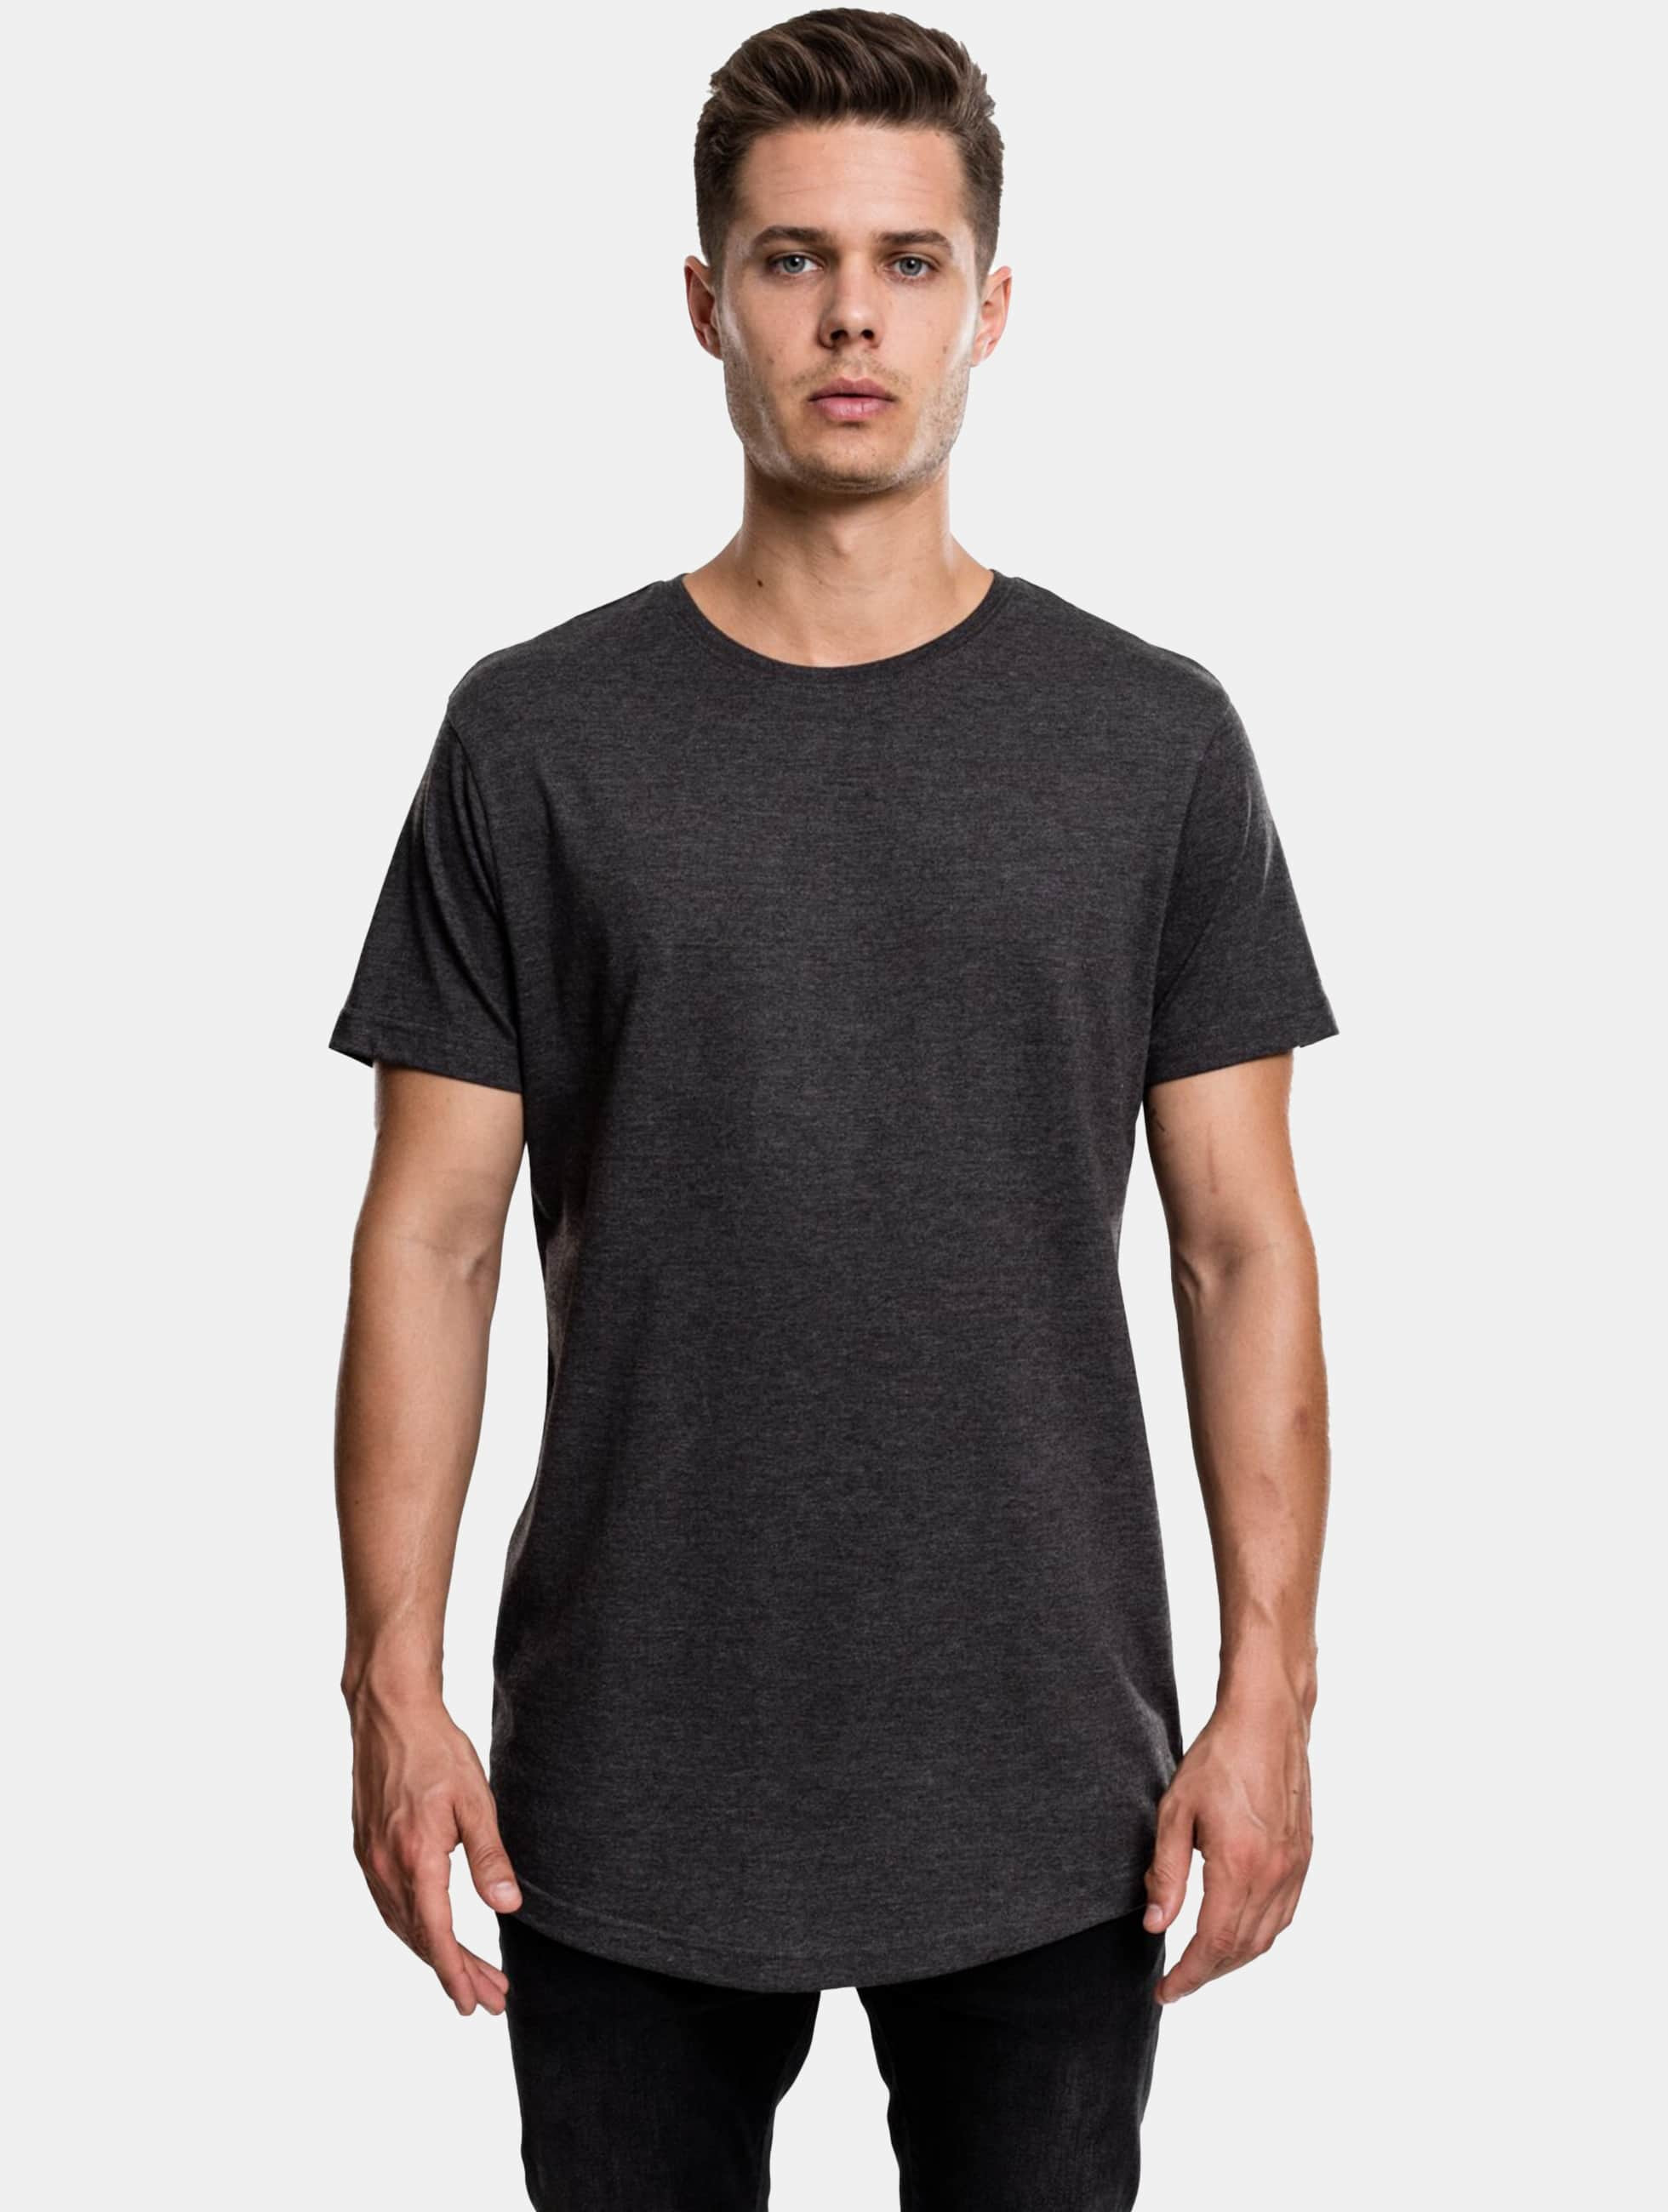 Urban Classics Tall Tees Shaped Melange Oversized Long серый